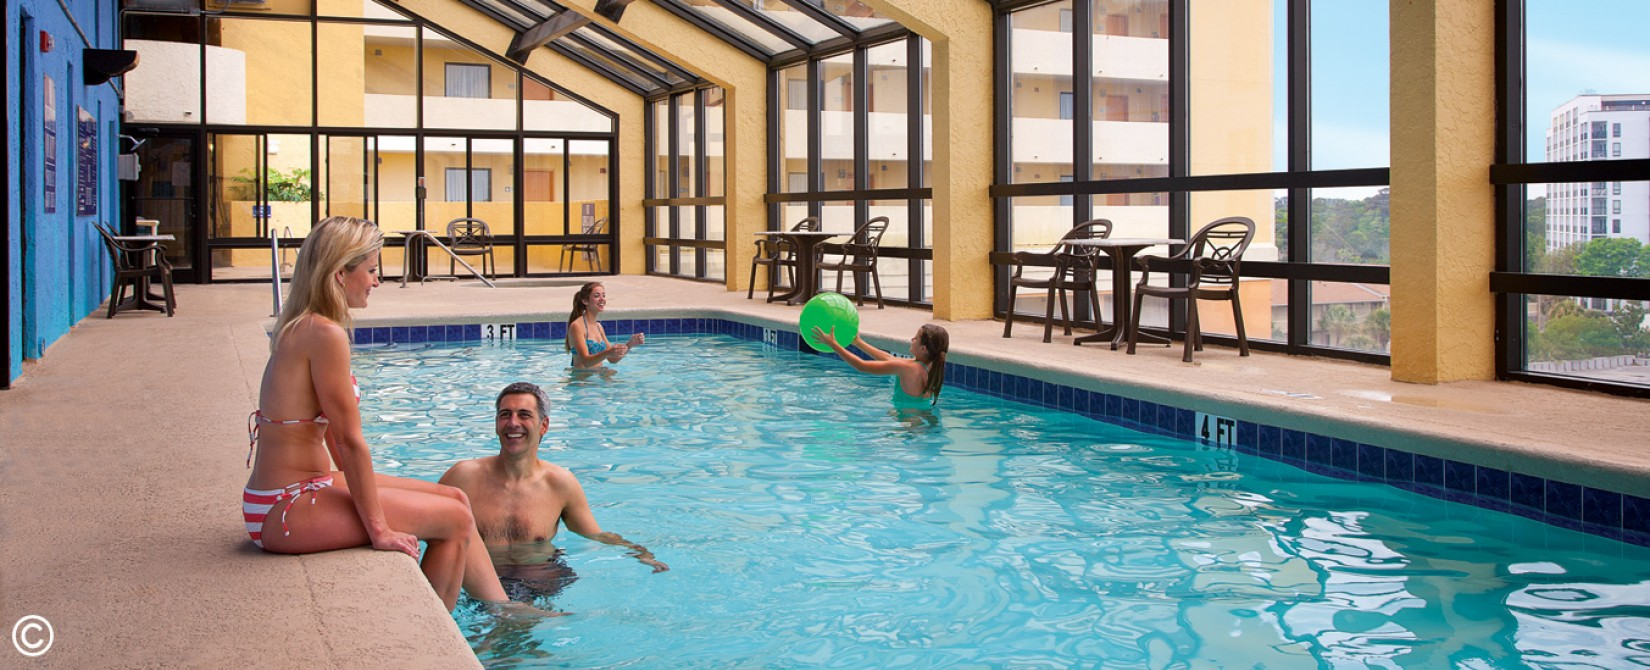 Family enjoying an indoor Myrtle Beach swimming pool.